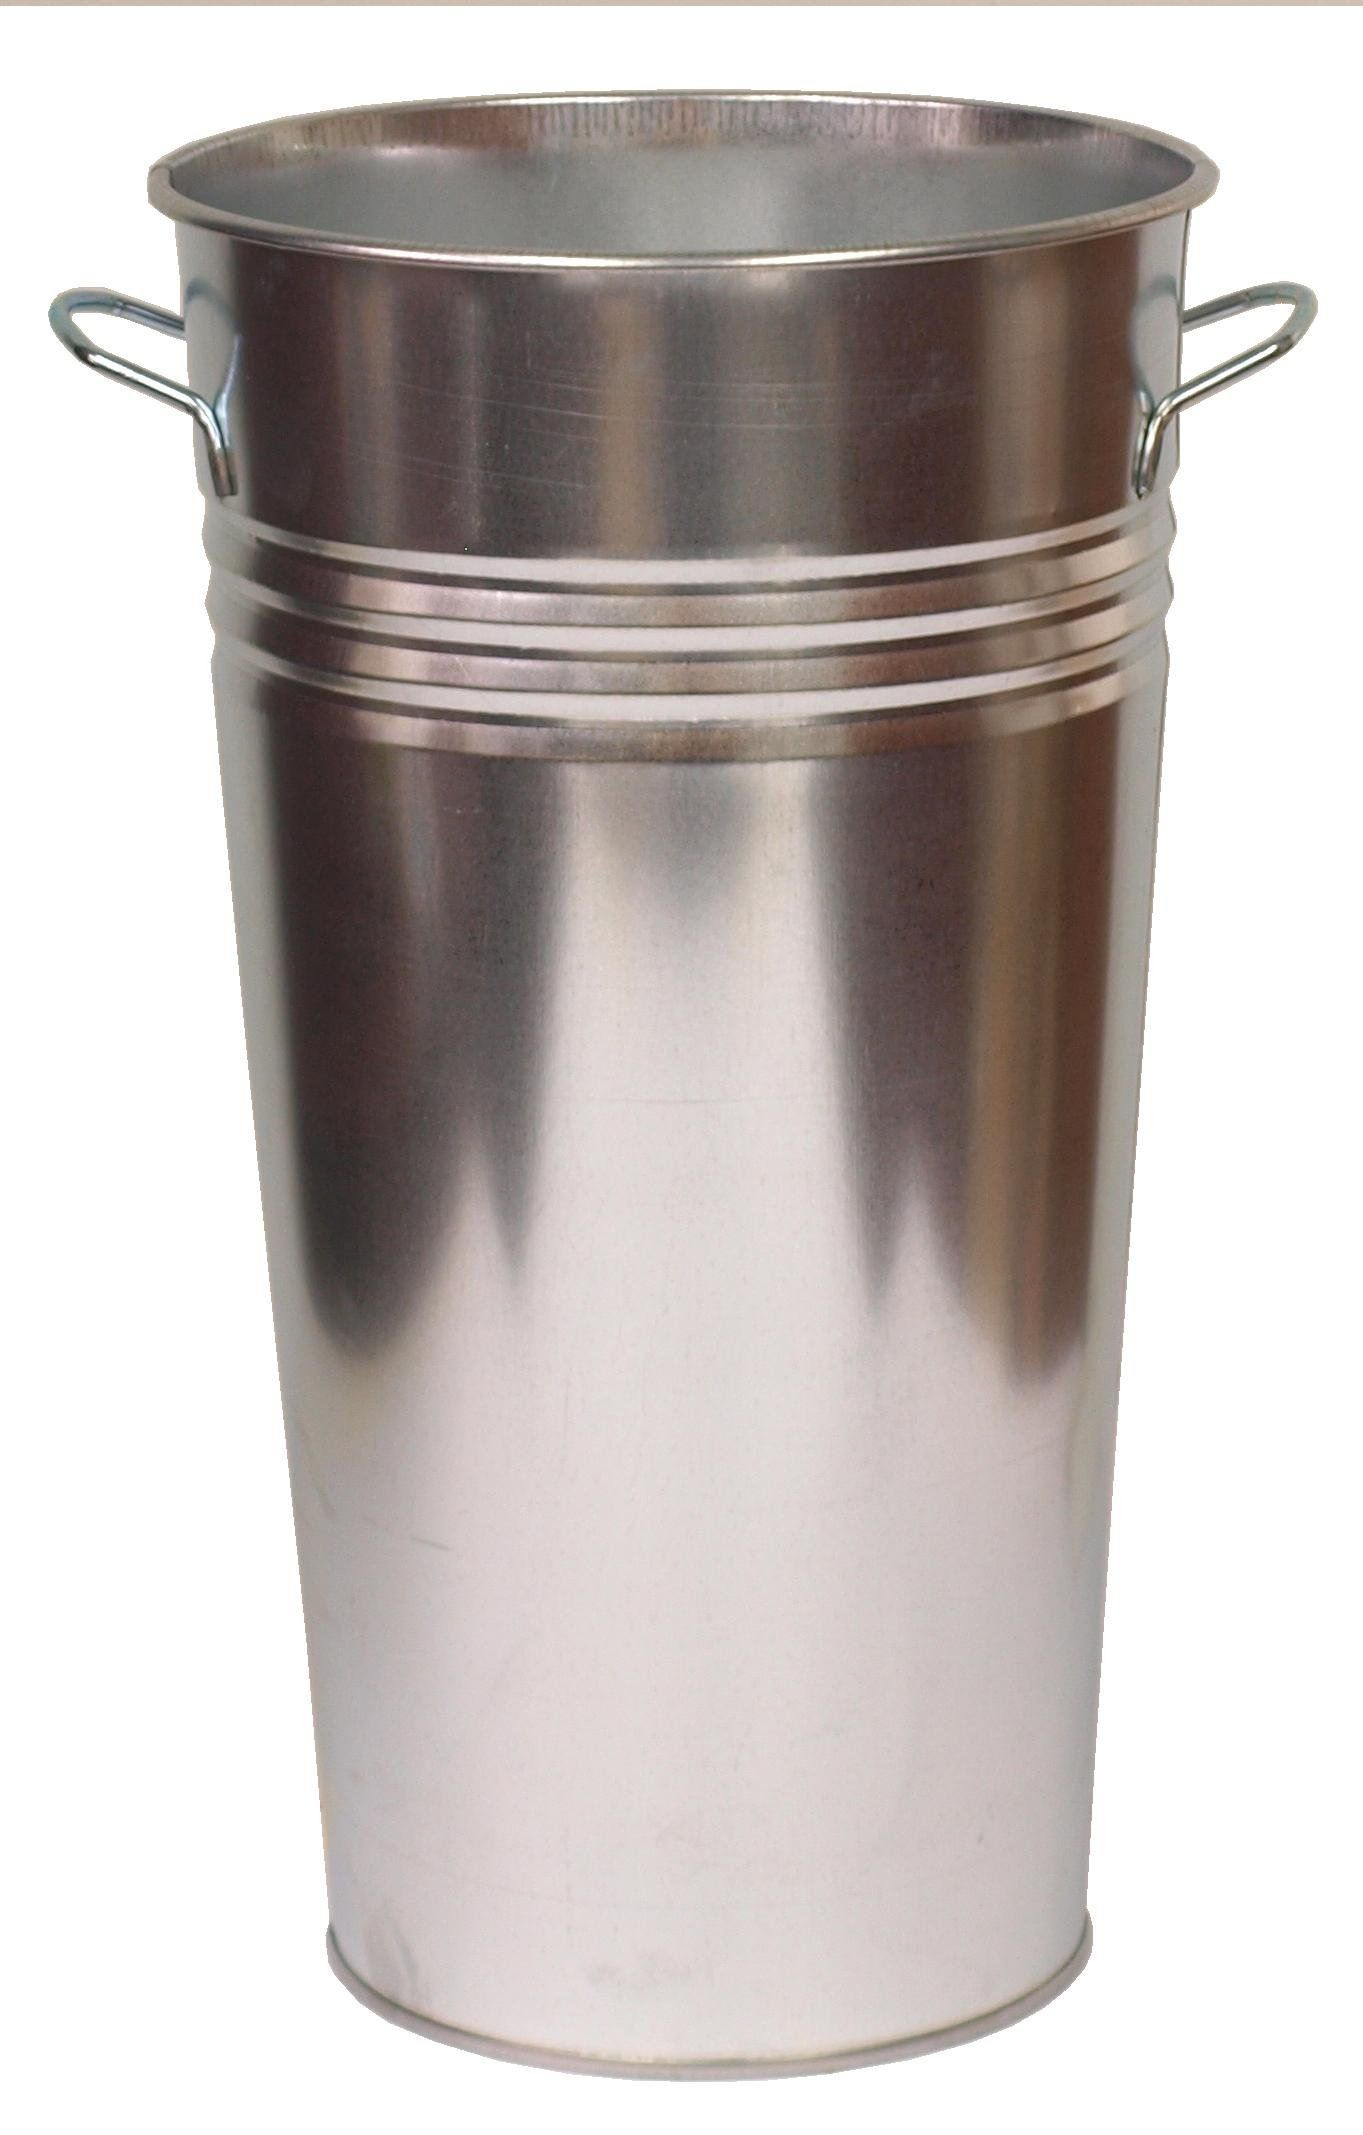 24 x 4 glass cylinder vase of houston international trading galvanized vase rustproof galvanized throughout houston international trading galvanized vase rustproof galvanized steel great for fresh cut flowers and